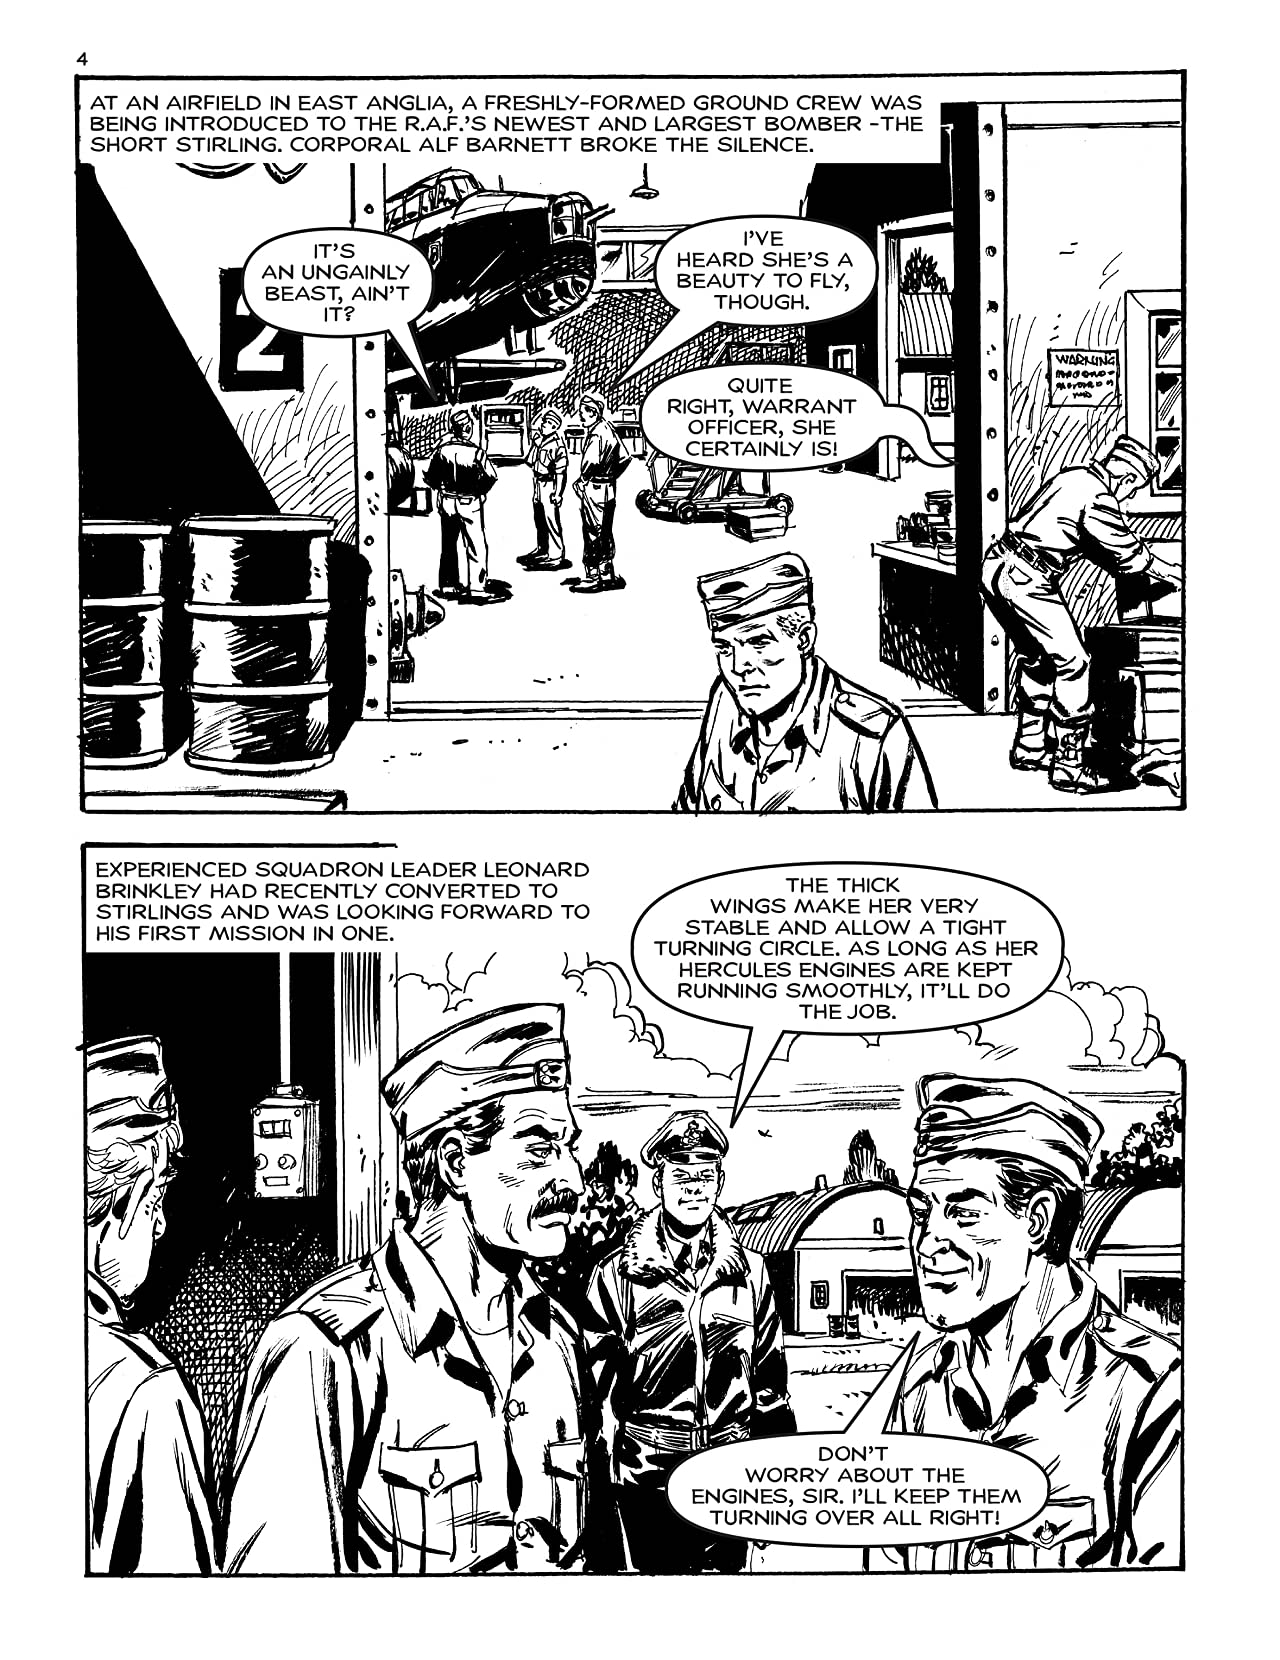 Commando #4975: Flying Blind